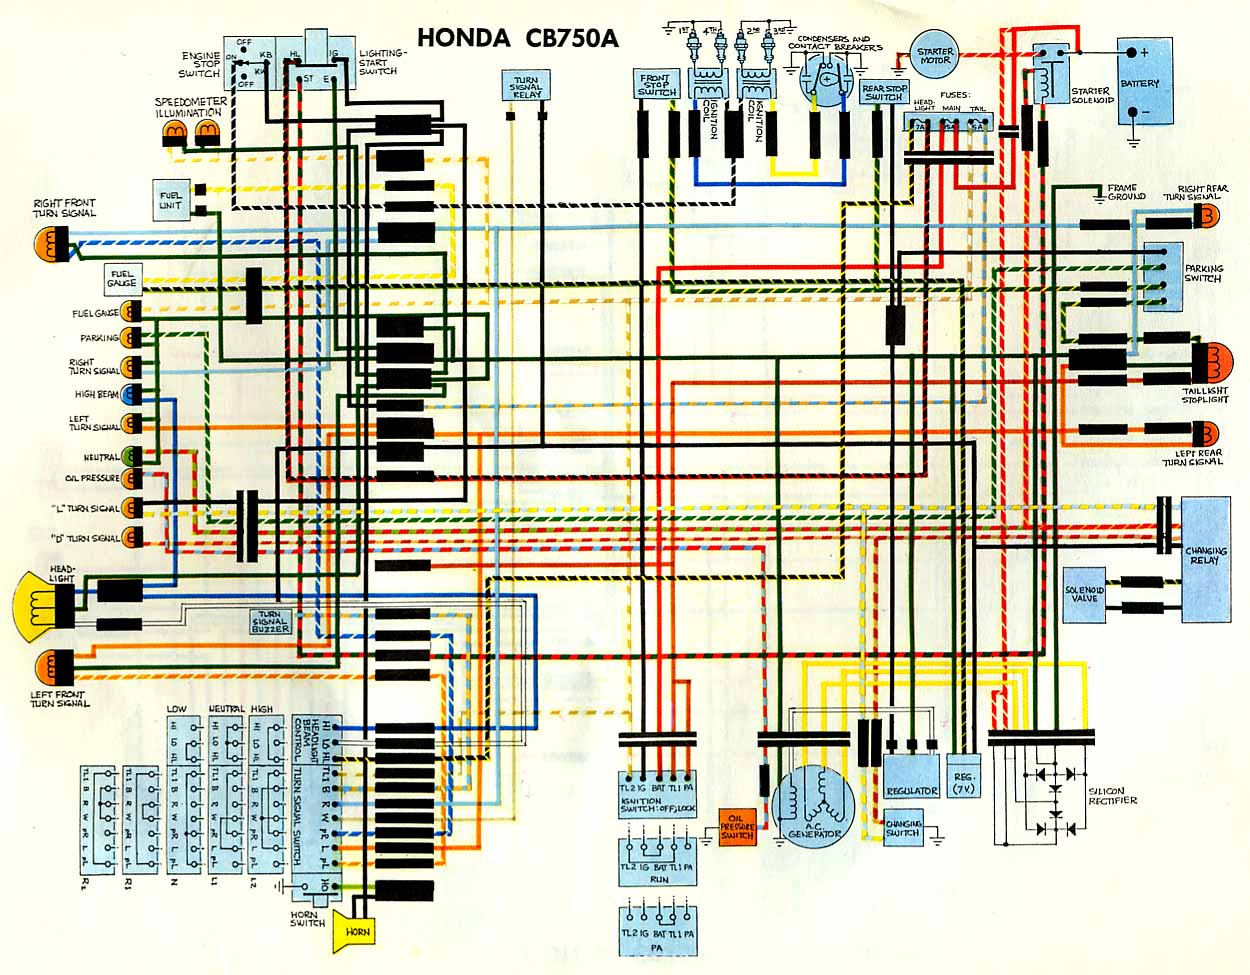 CB750auto wiring diagrams Honda CT70 Wiring-Diagram at mifinder.co